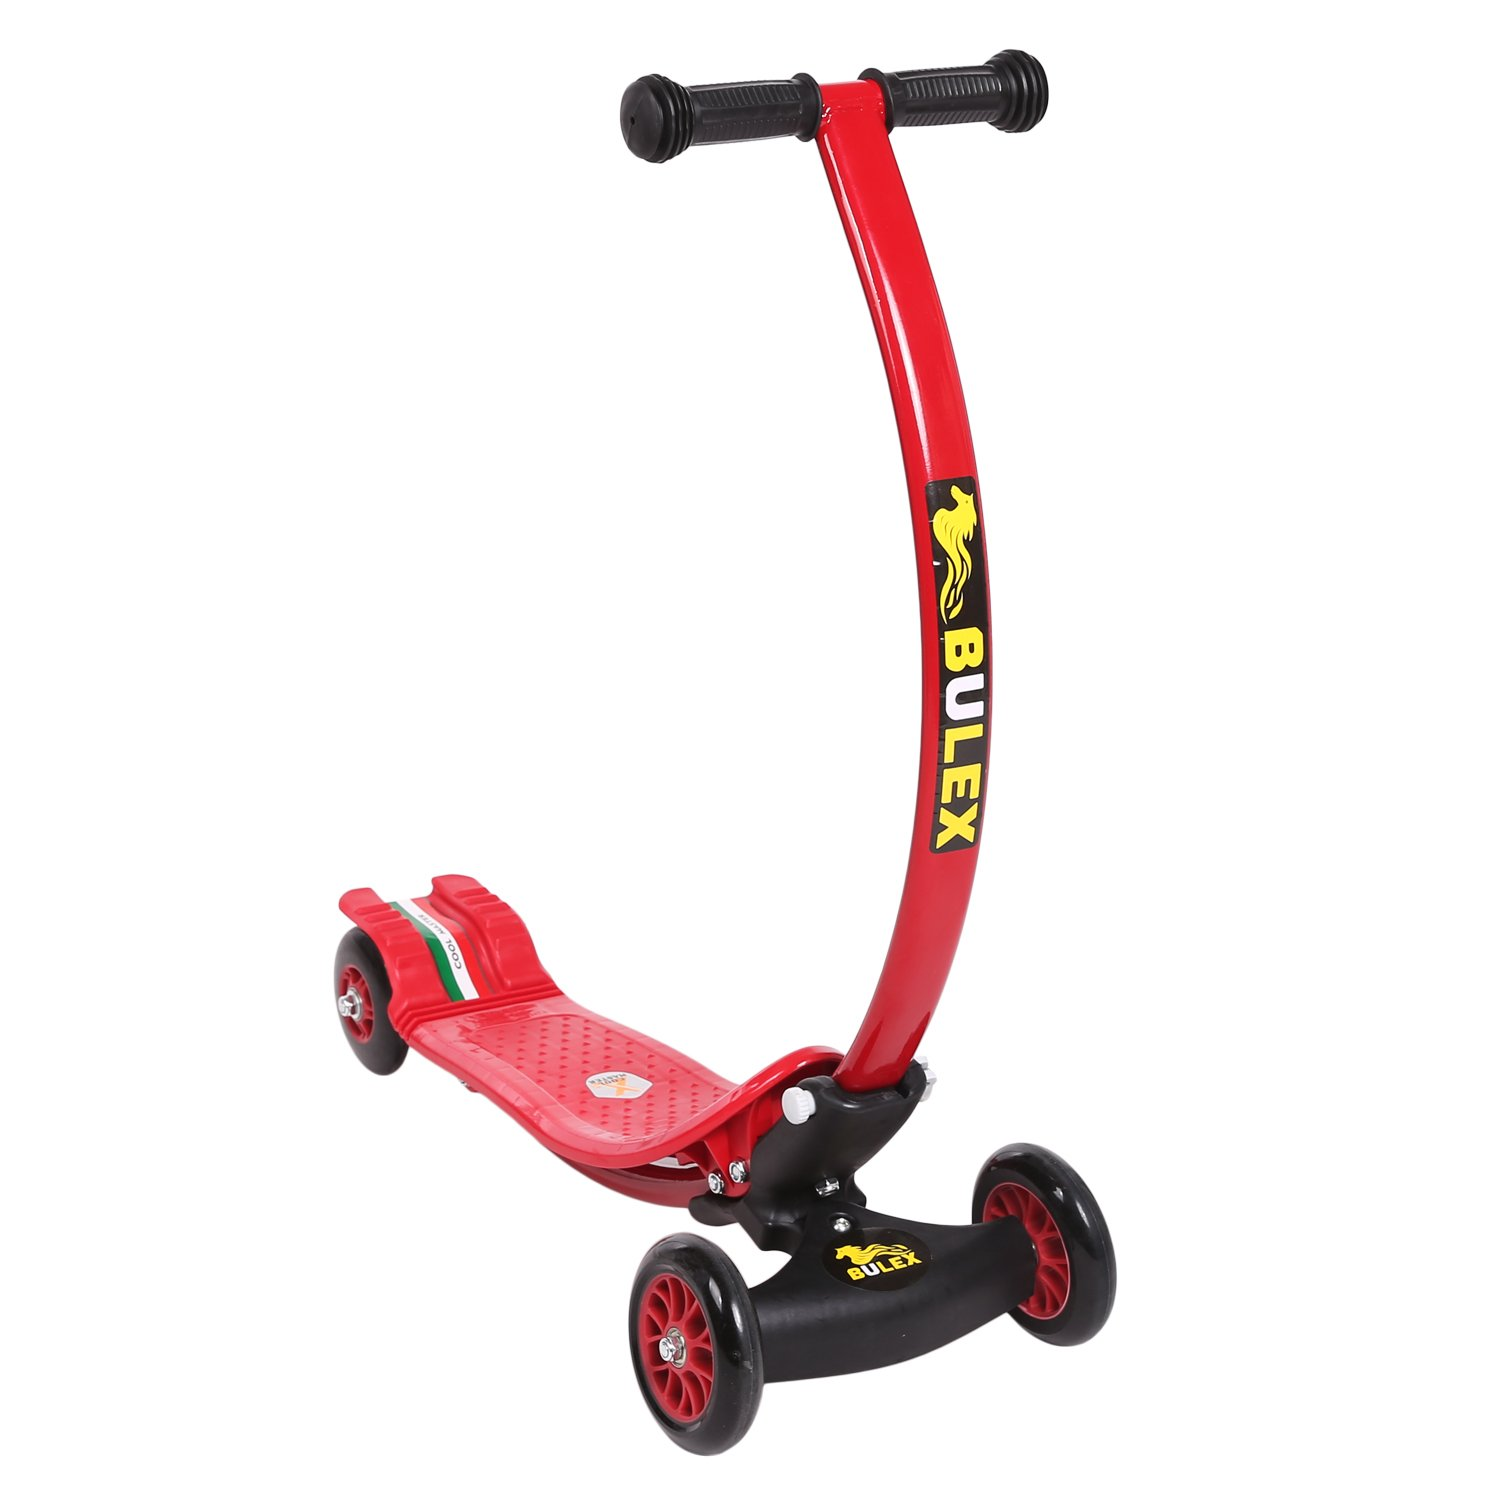 Ancheer patinete 4 ruedas plegable Freestyle Scooter ...